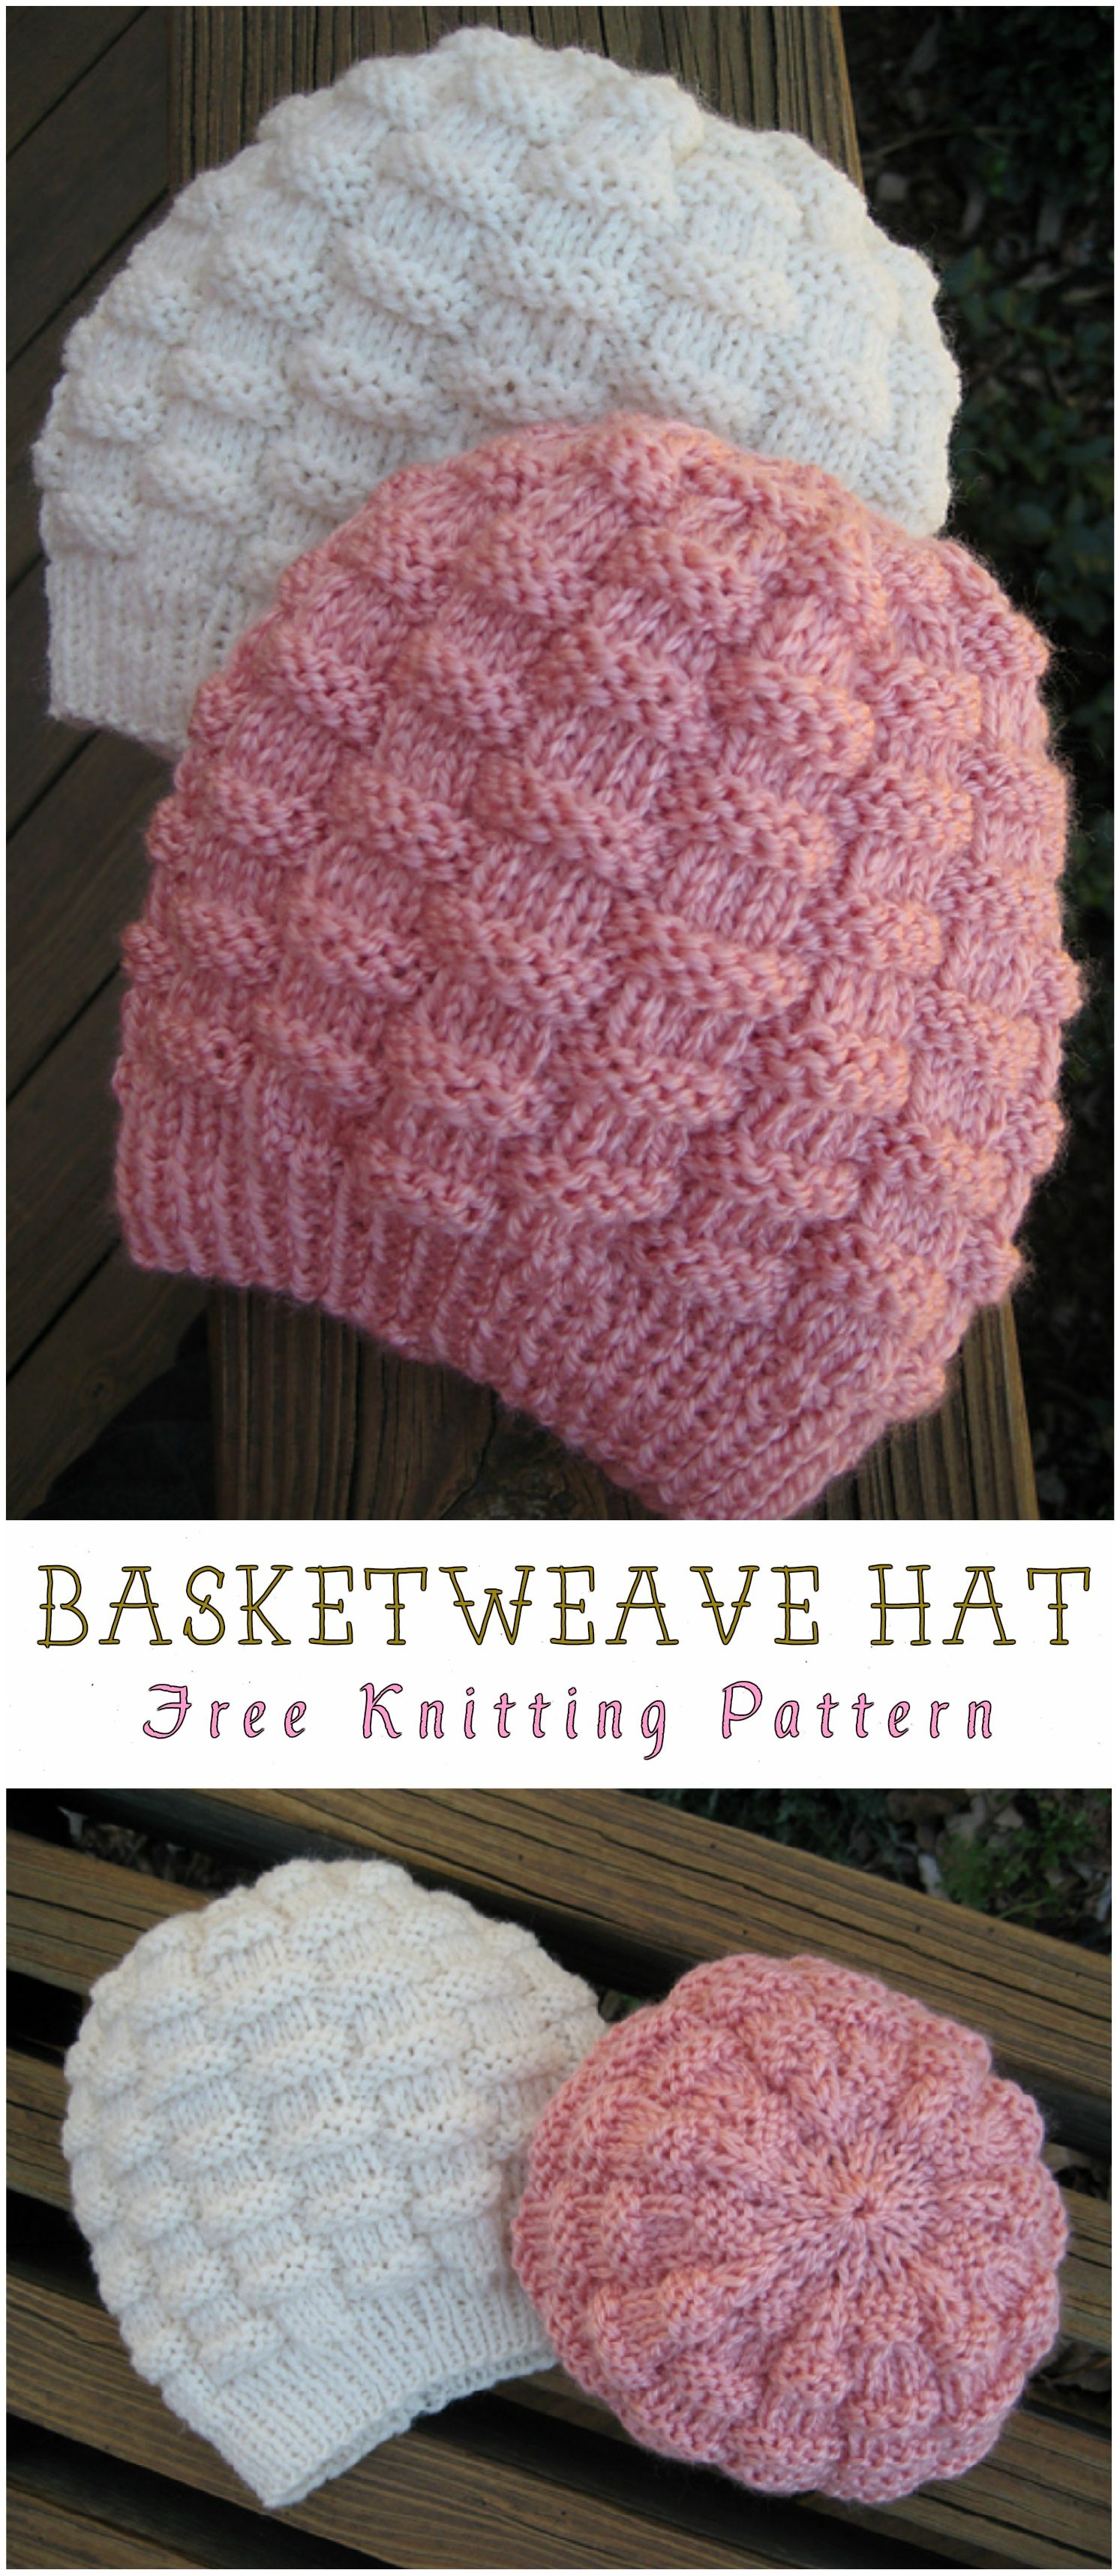 Basketweave Hat Free Knitting Pattern  f03f4a38c4ad